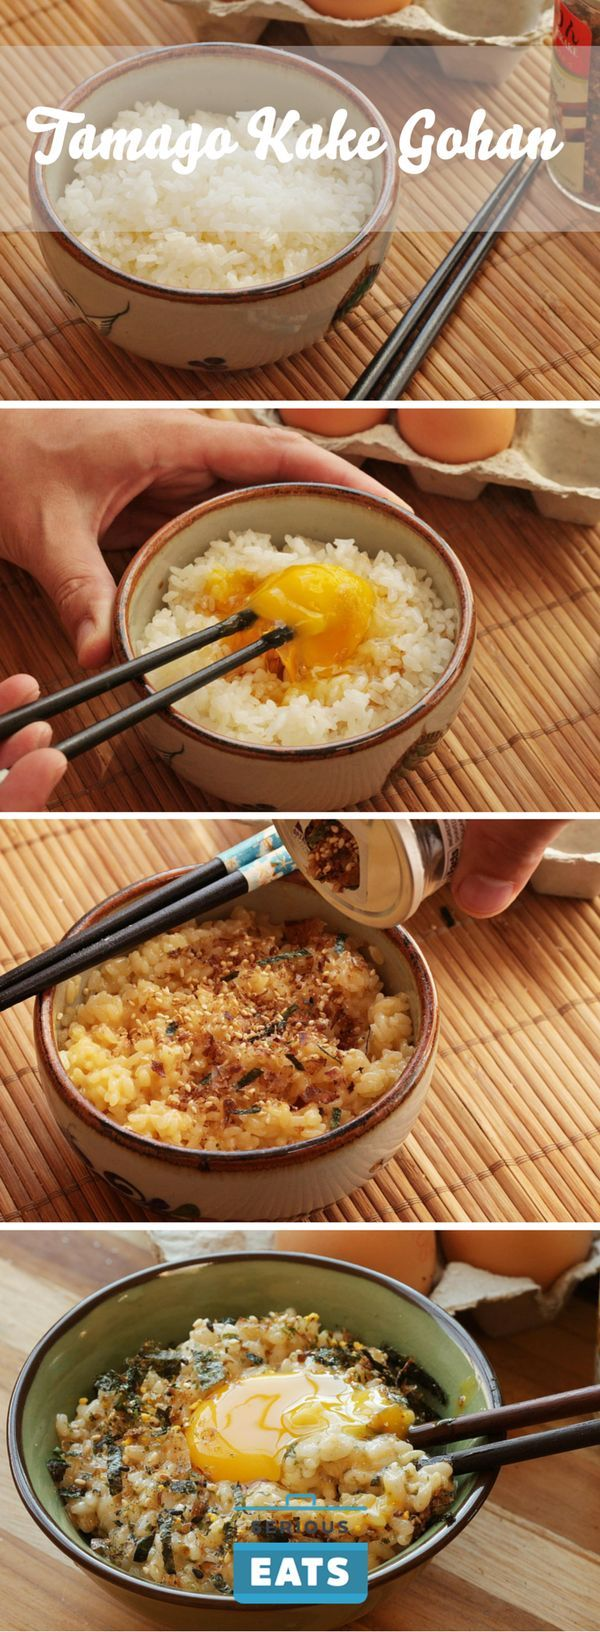 726 best RICE/RISOTTO images by Vicki Pediatric ER DOC on Pinterest ...